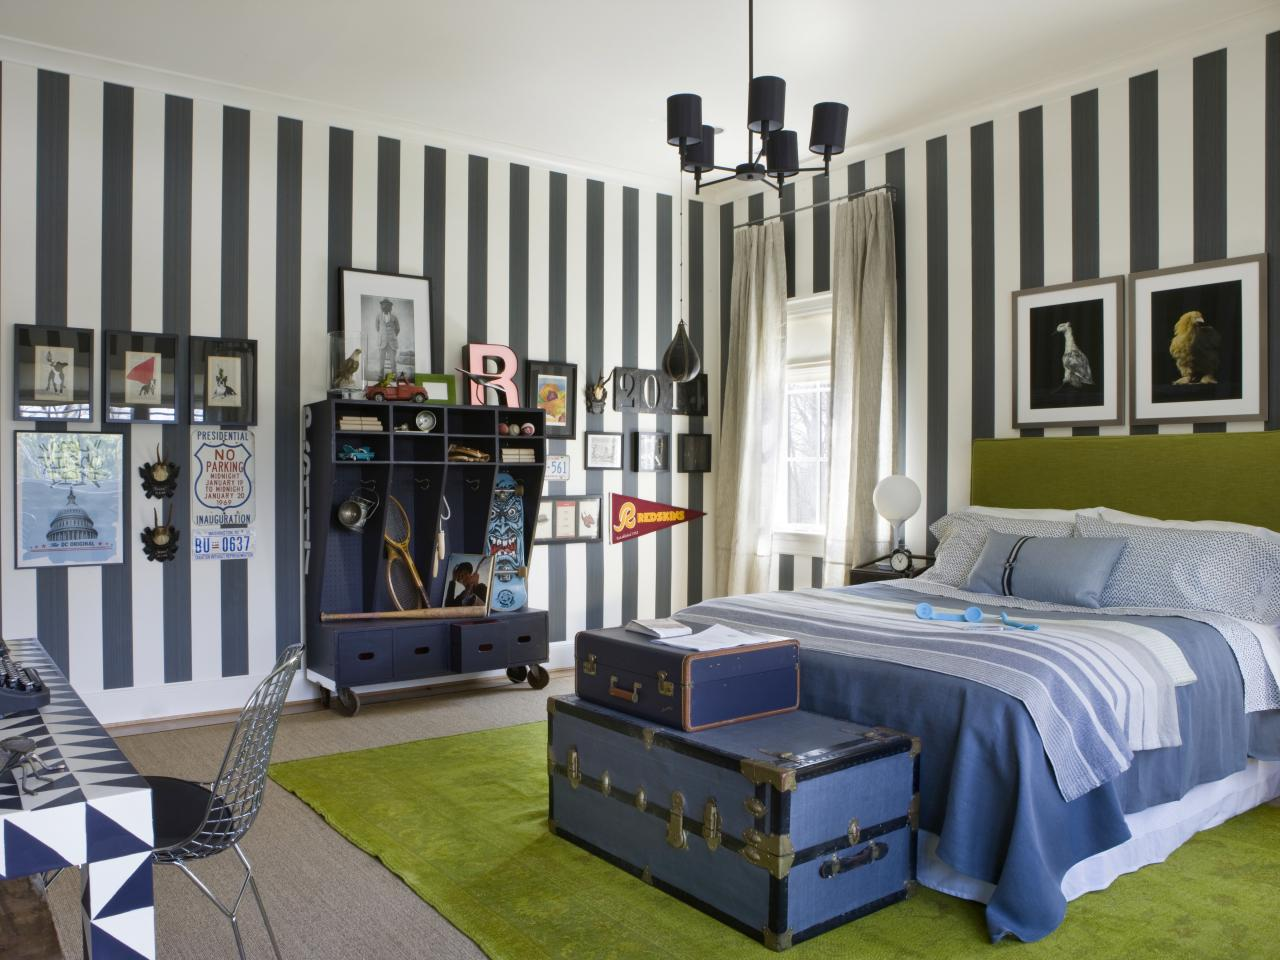 DP_DC-Design-House-2013-Teenage-Boys-Bedroom_s4x3.jpg.rend.hgtvcom.1280.960